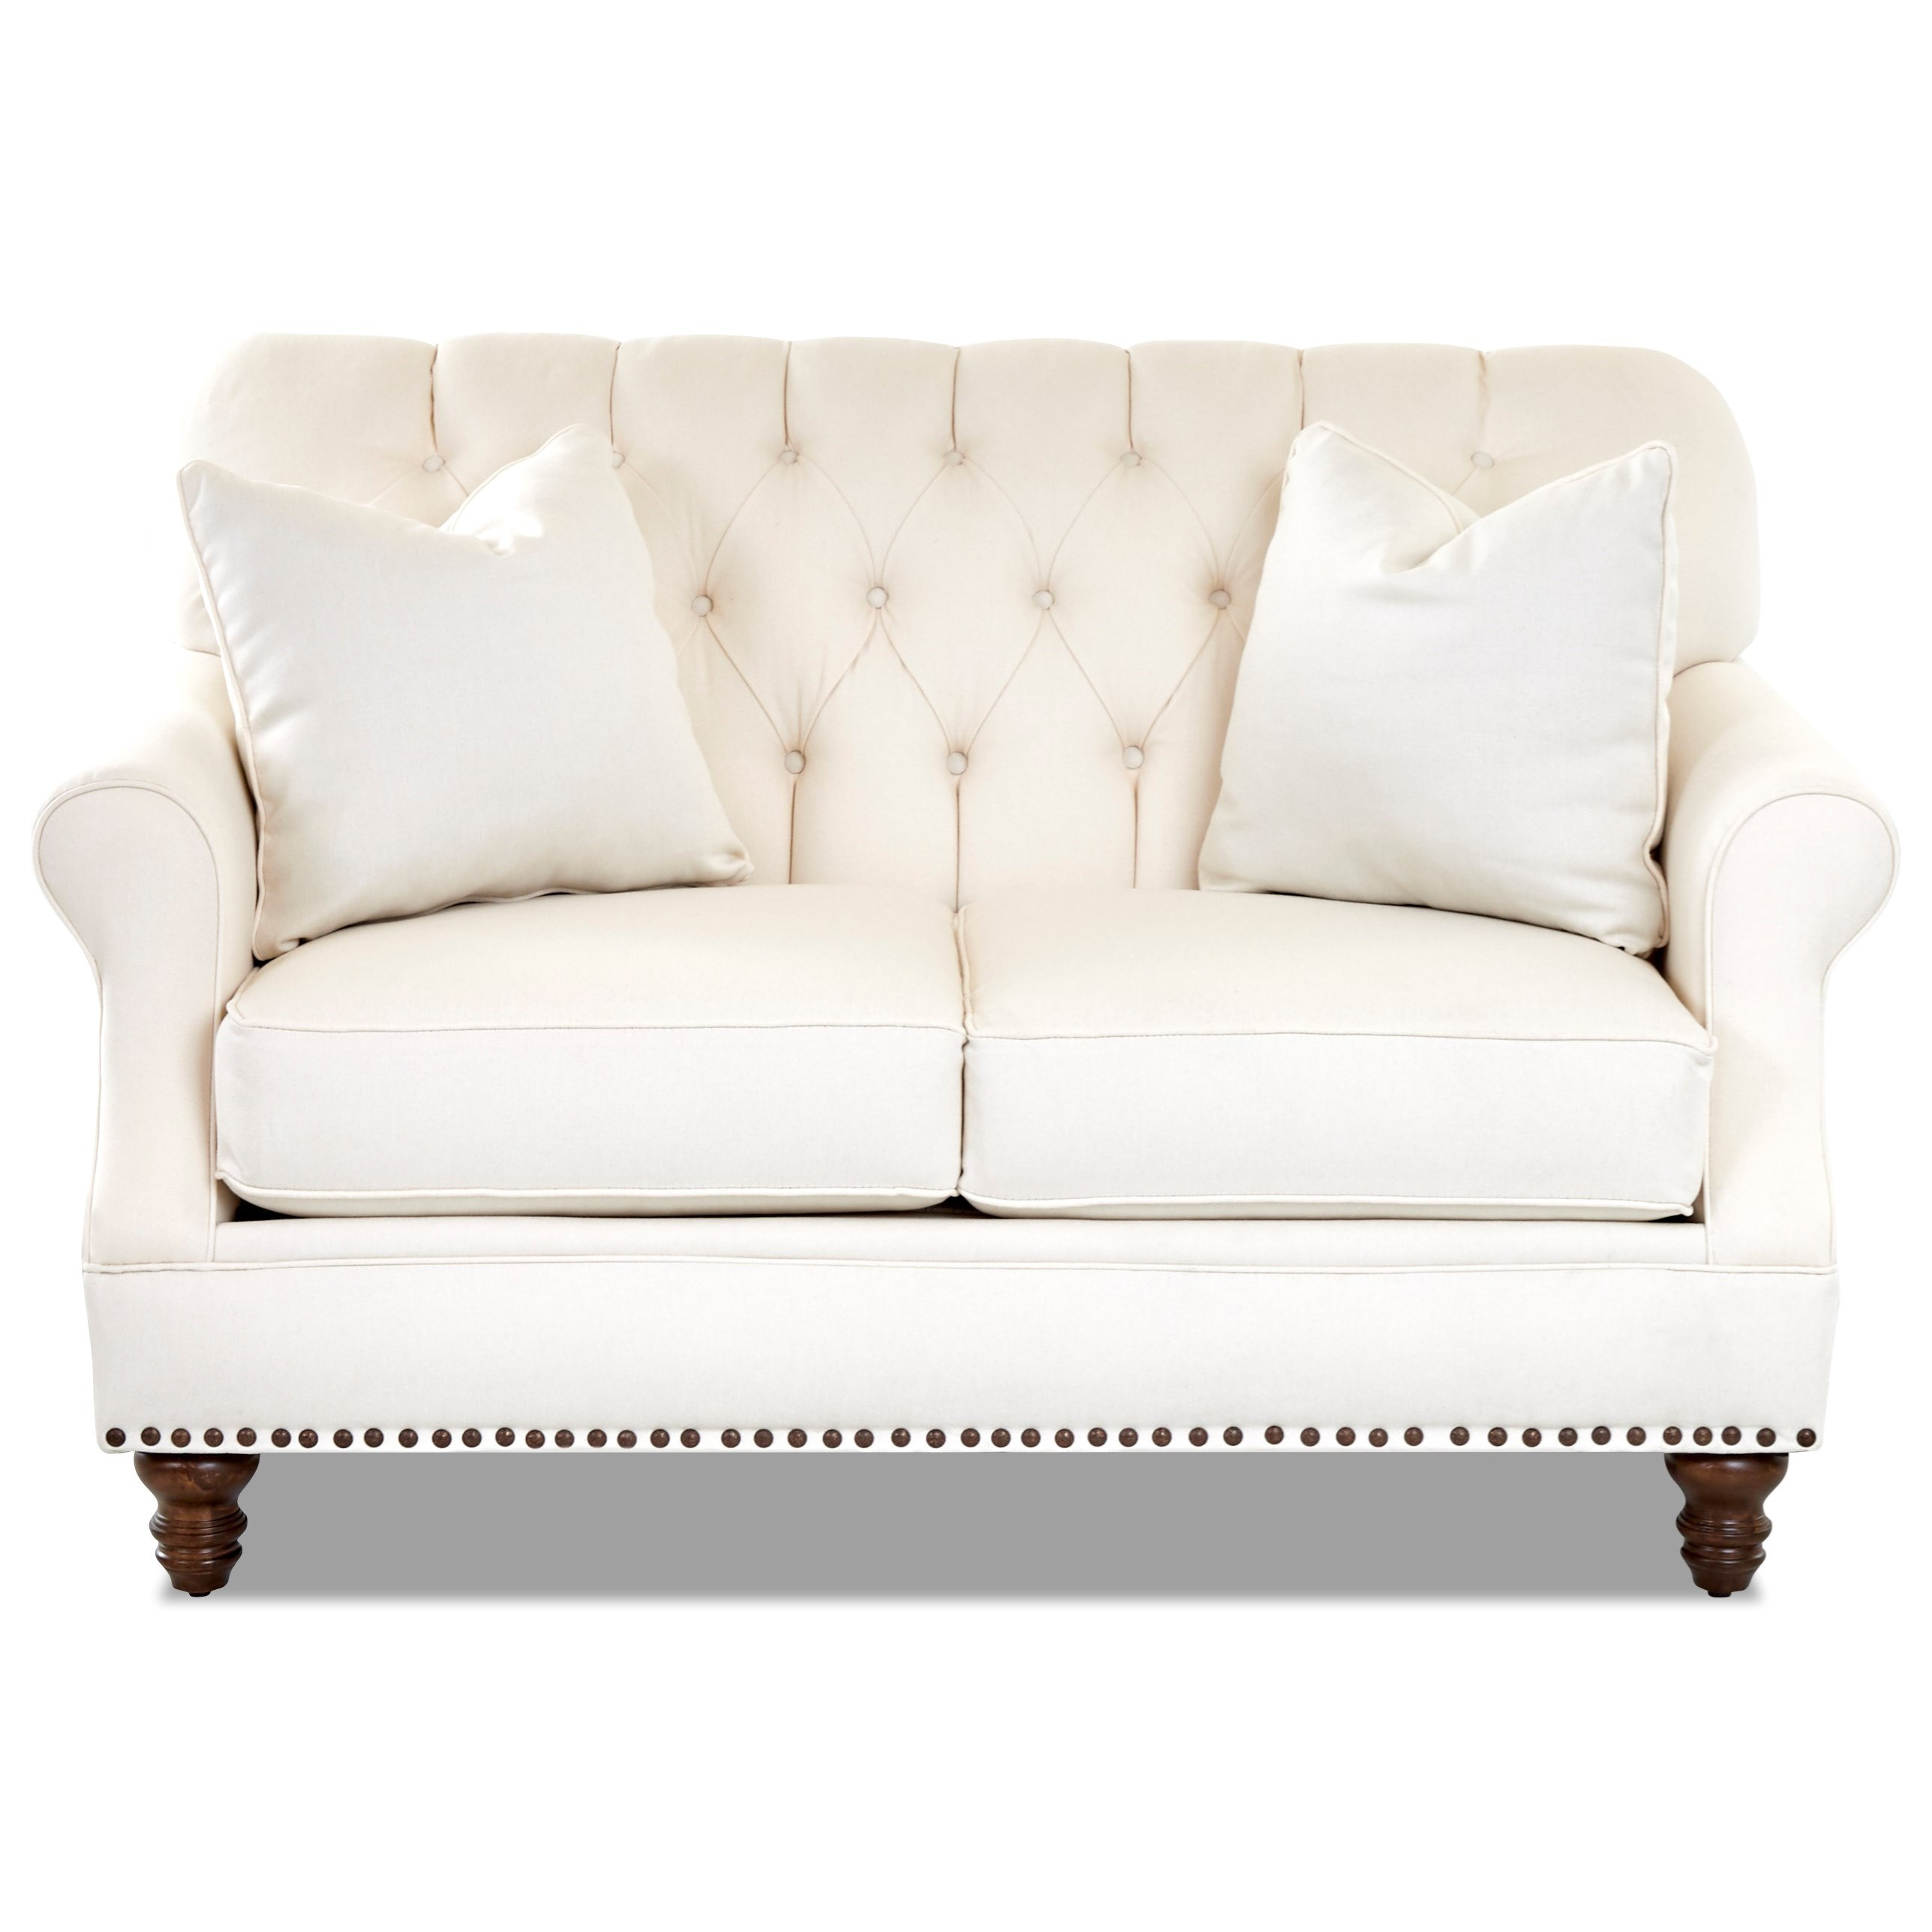 Burbank Loveseat w/ Nailheads by Klaussner at Northeast Factory Direct